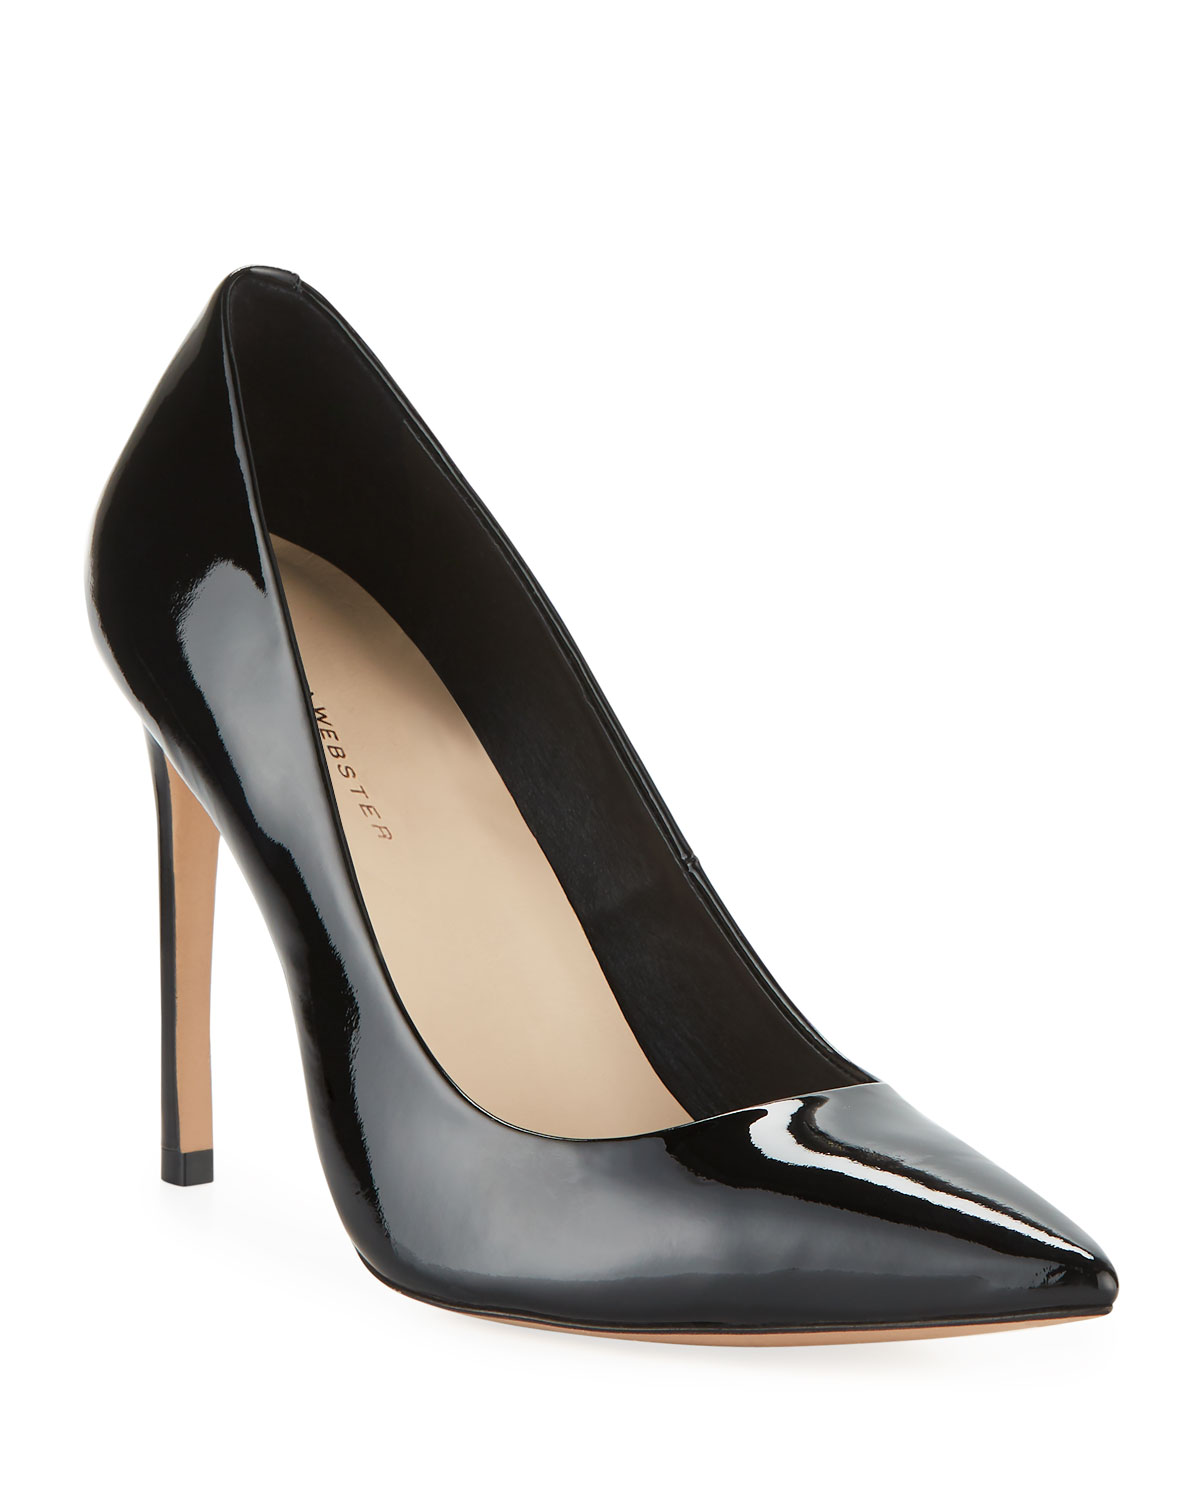 3c85224e447 Sophia Webster Rio High-Heel Patent Leather Pumps